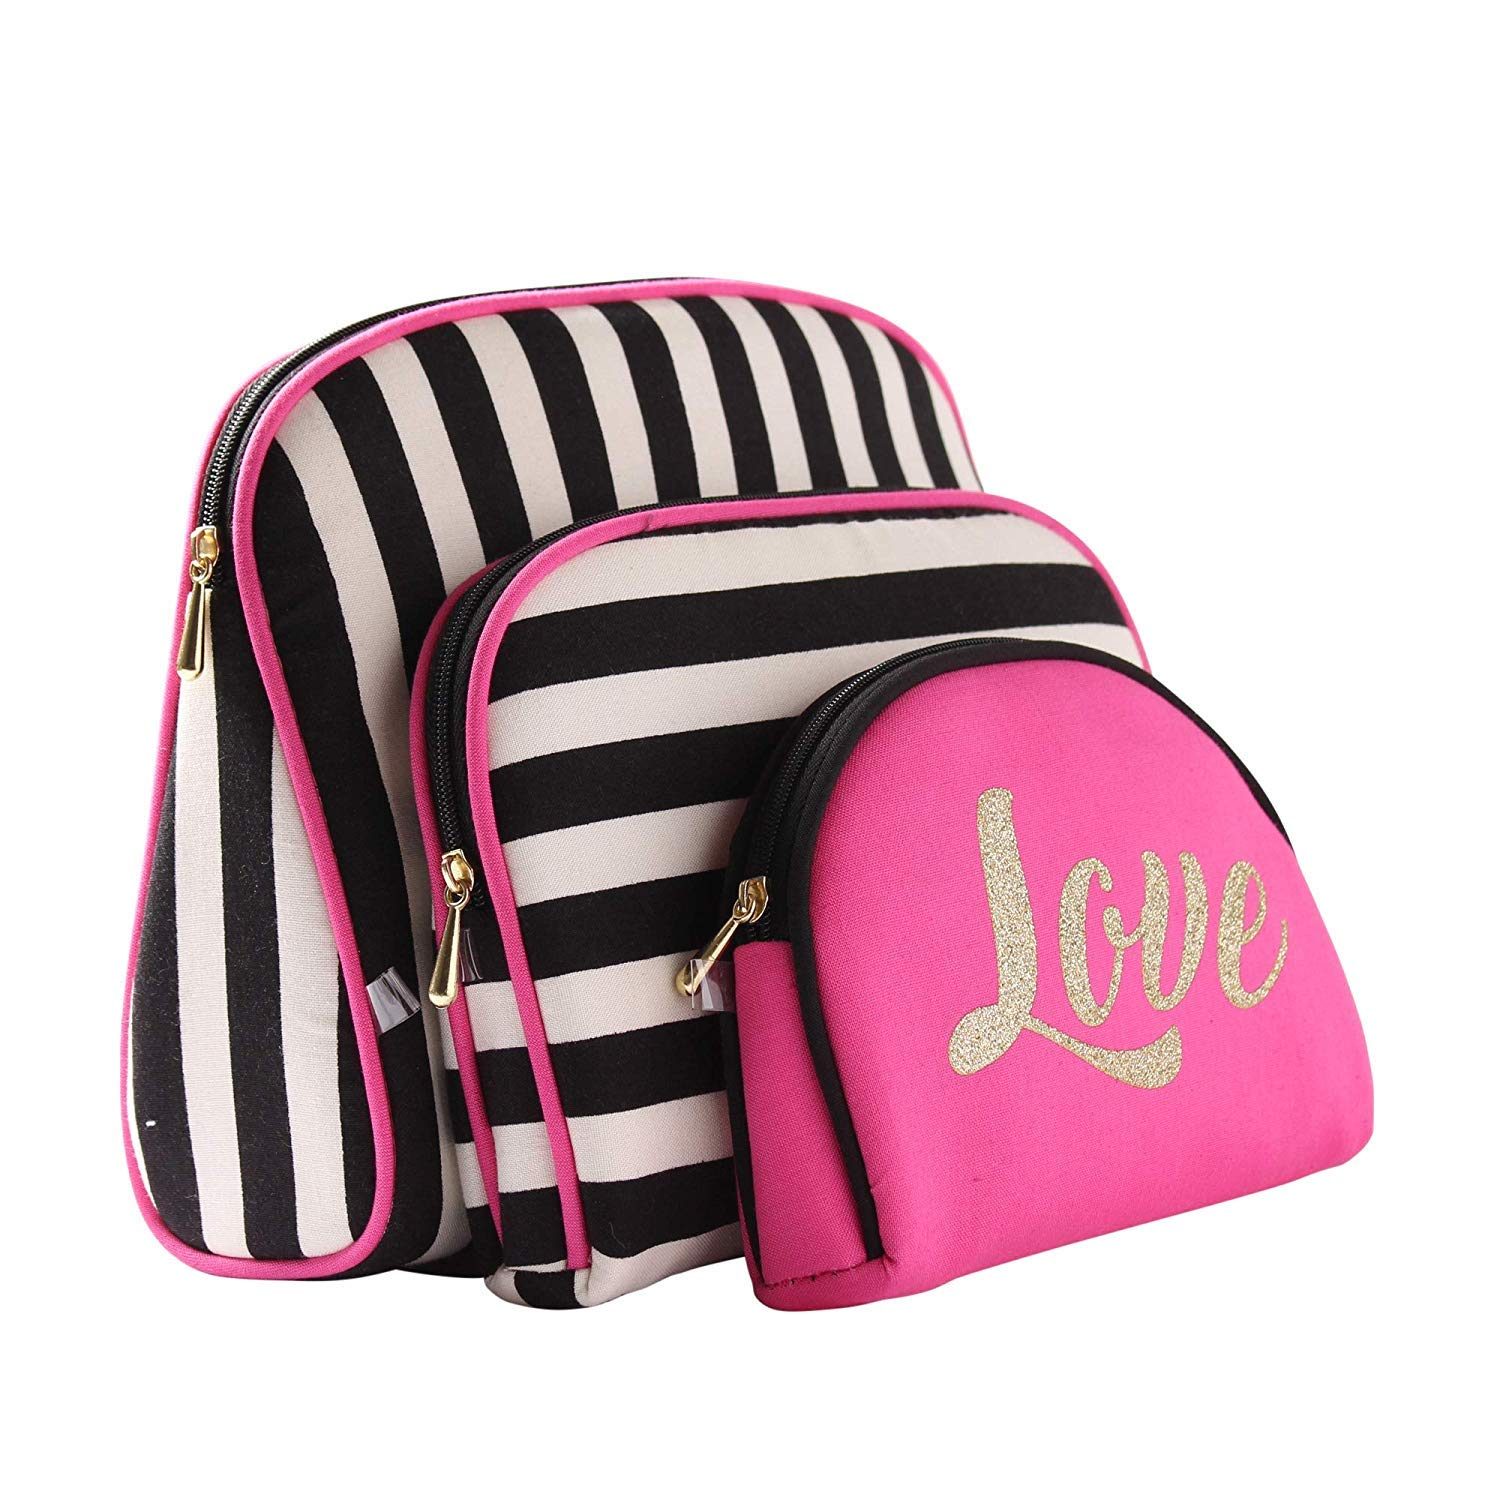 CASTEL Once Upon A Rose Cosmetic Bag 3 Piece Set, Makeup Organizer, Toiletry Pouch, for Brushes, Pencil Case, Accessories, Travel, Girls, Gift Idea (Love & Stripes)